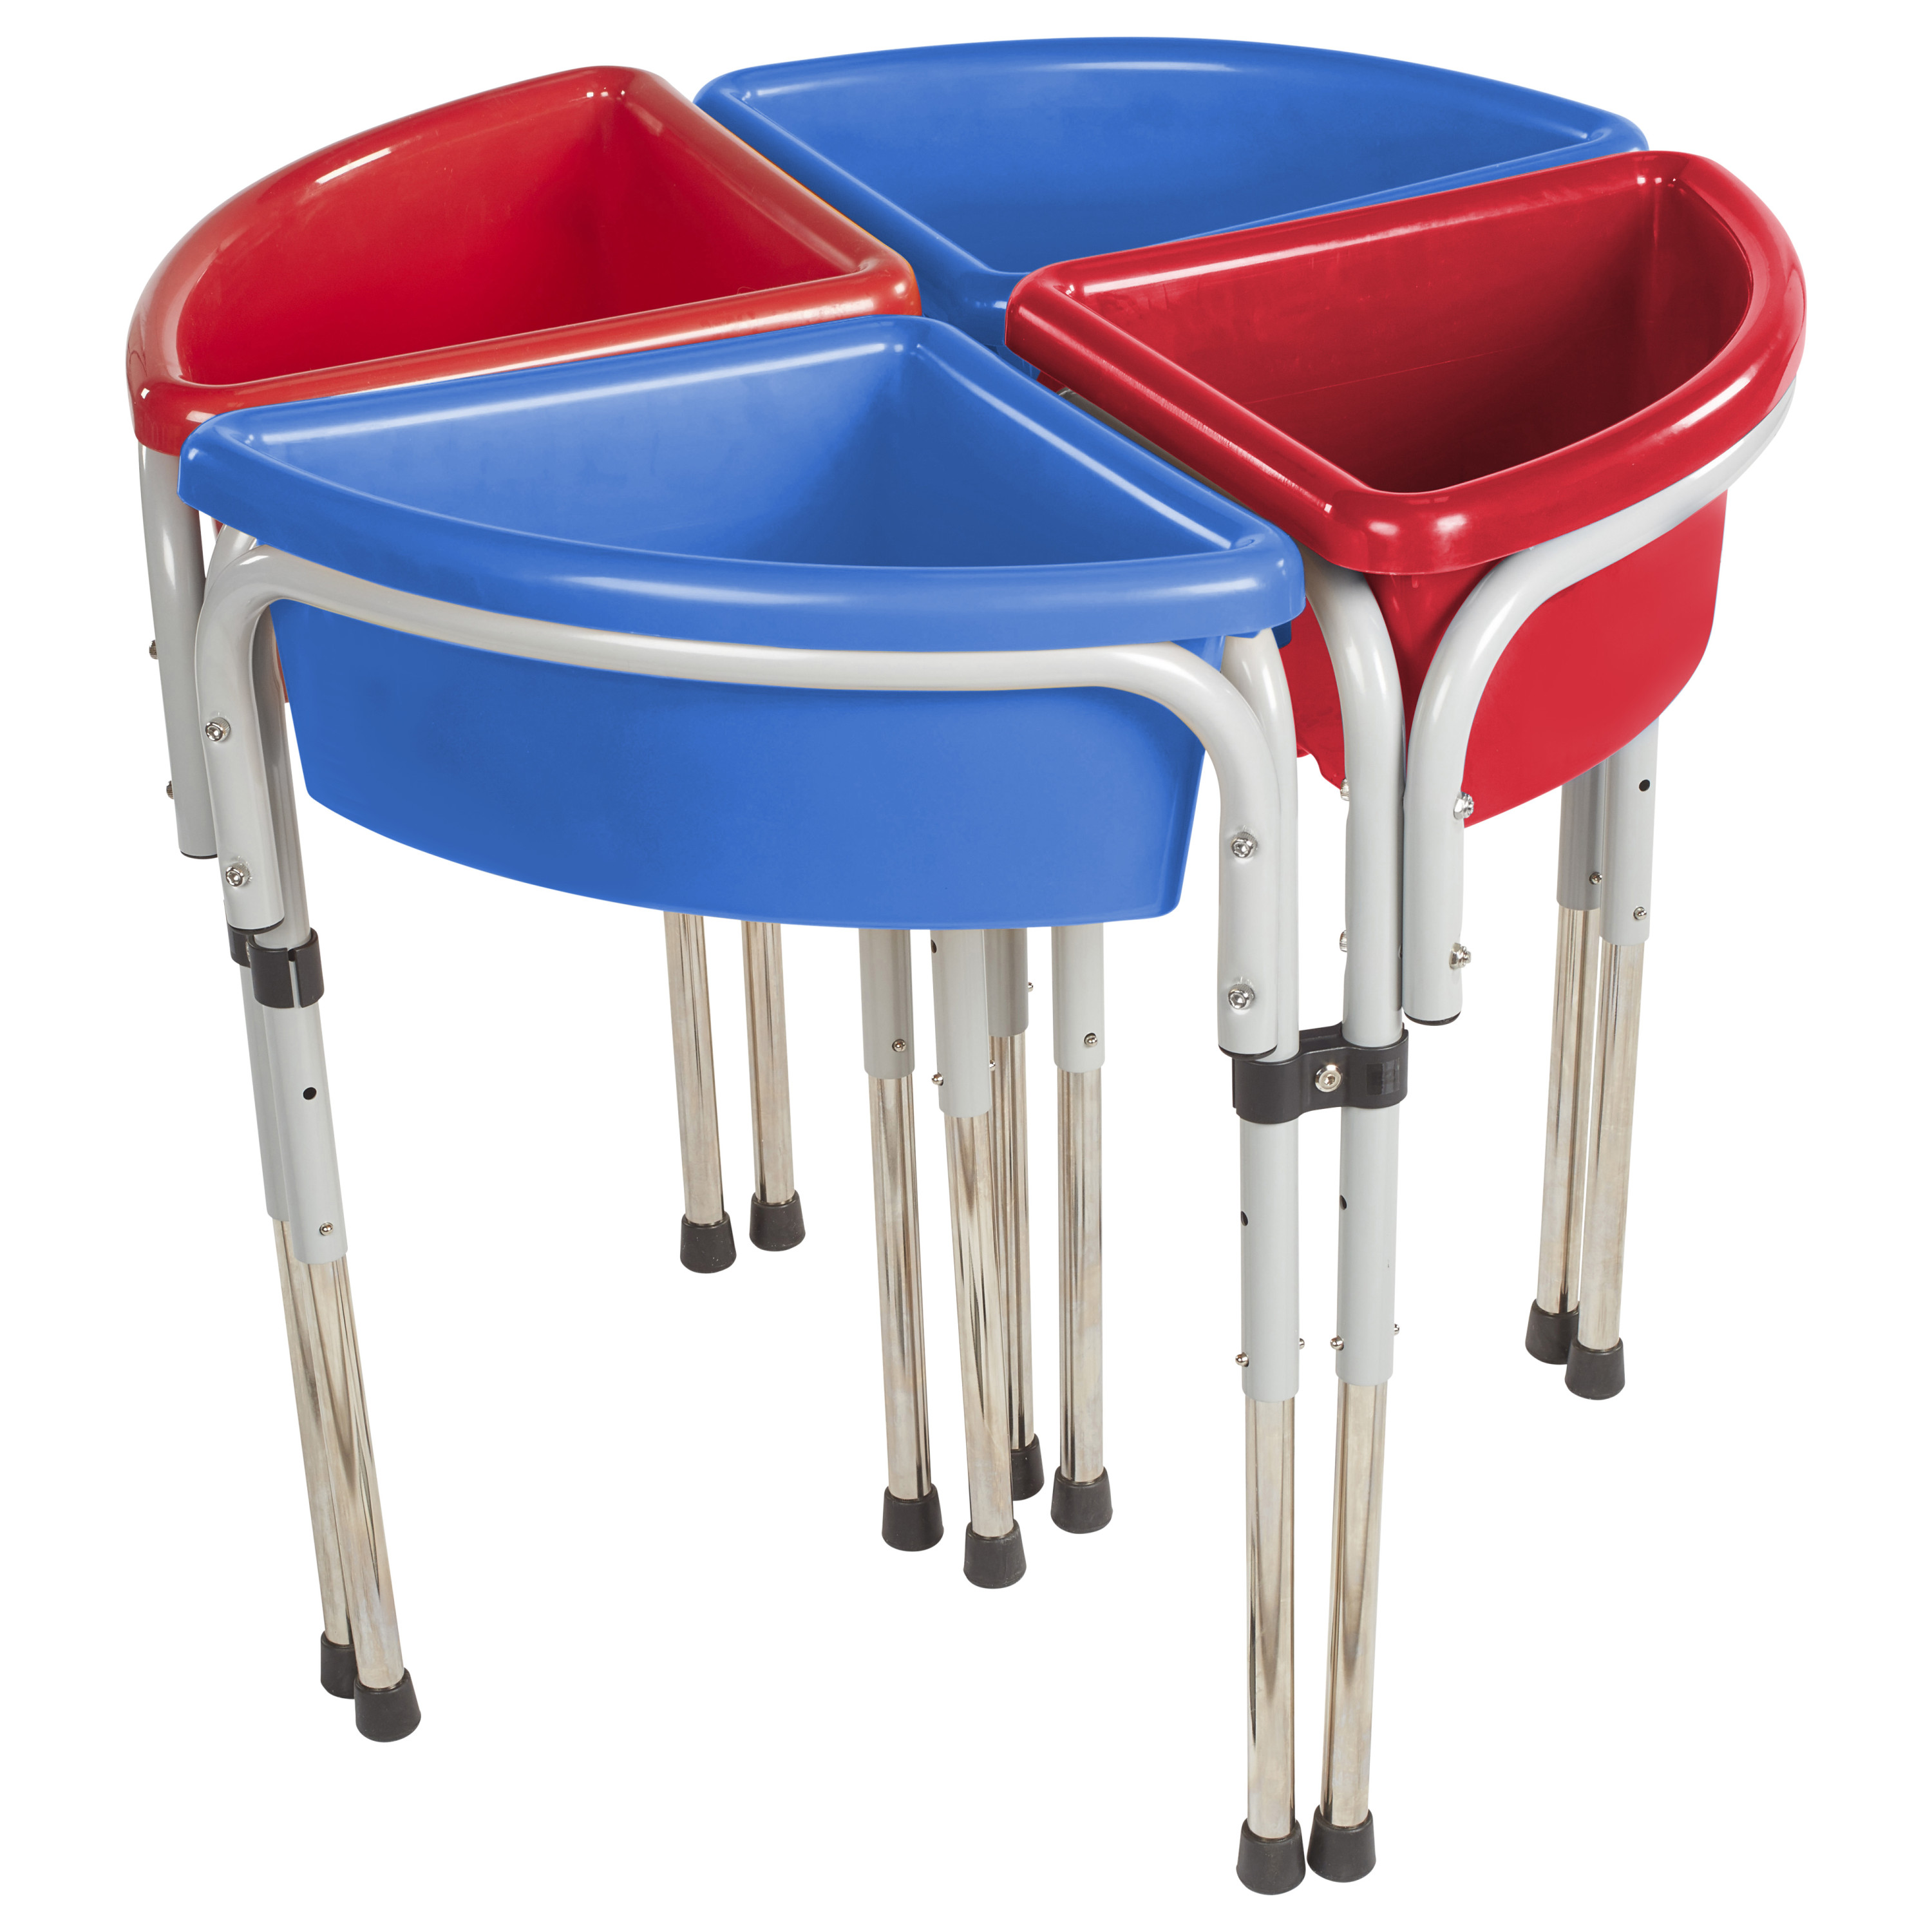 4 Station Round Sand and Water Table with Lids